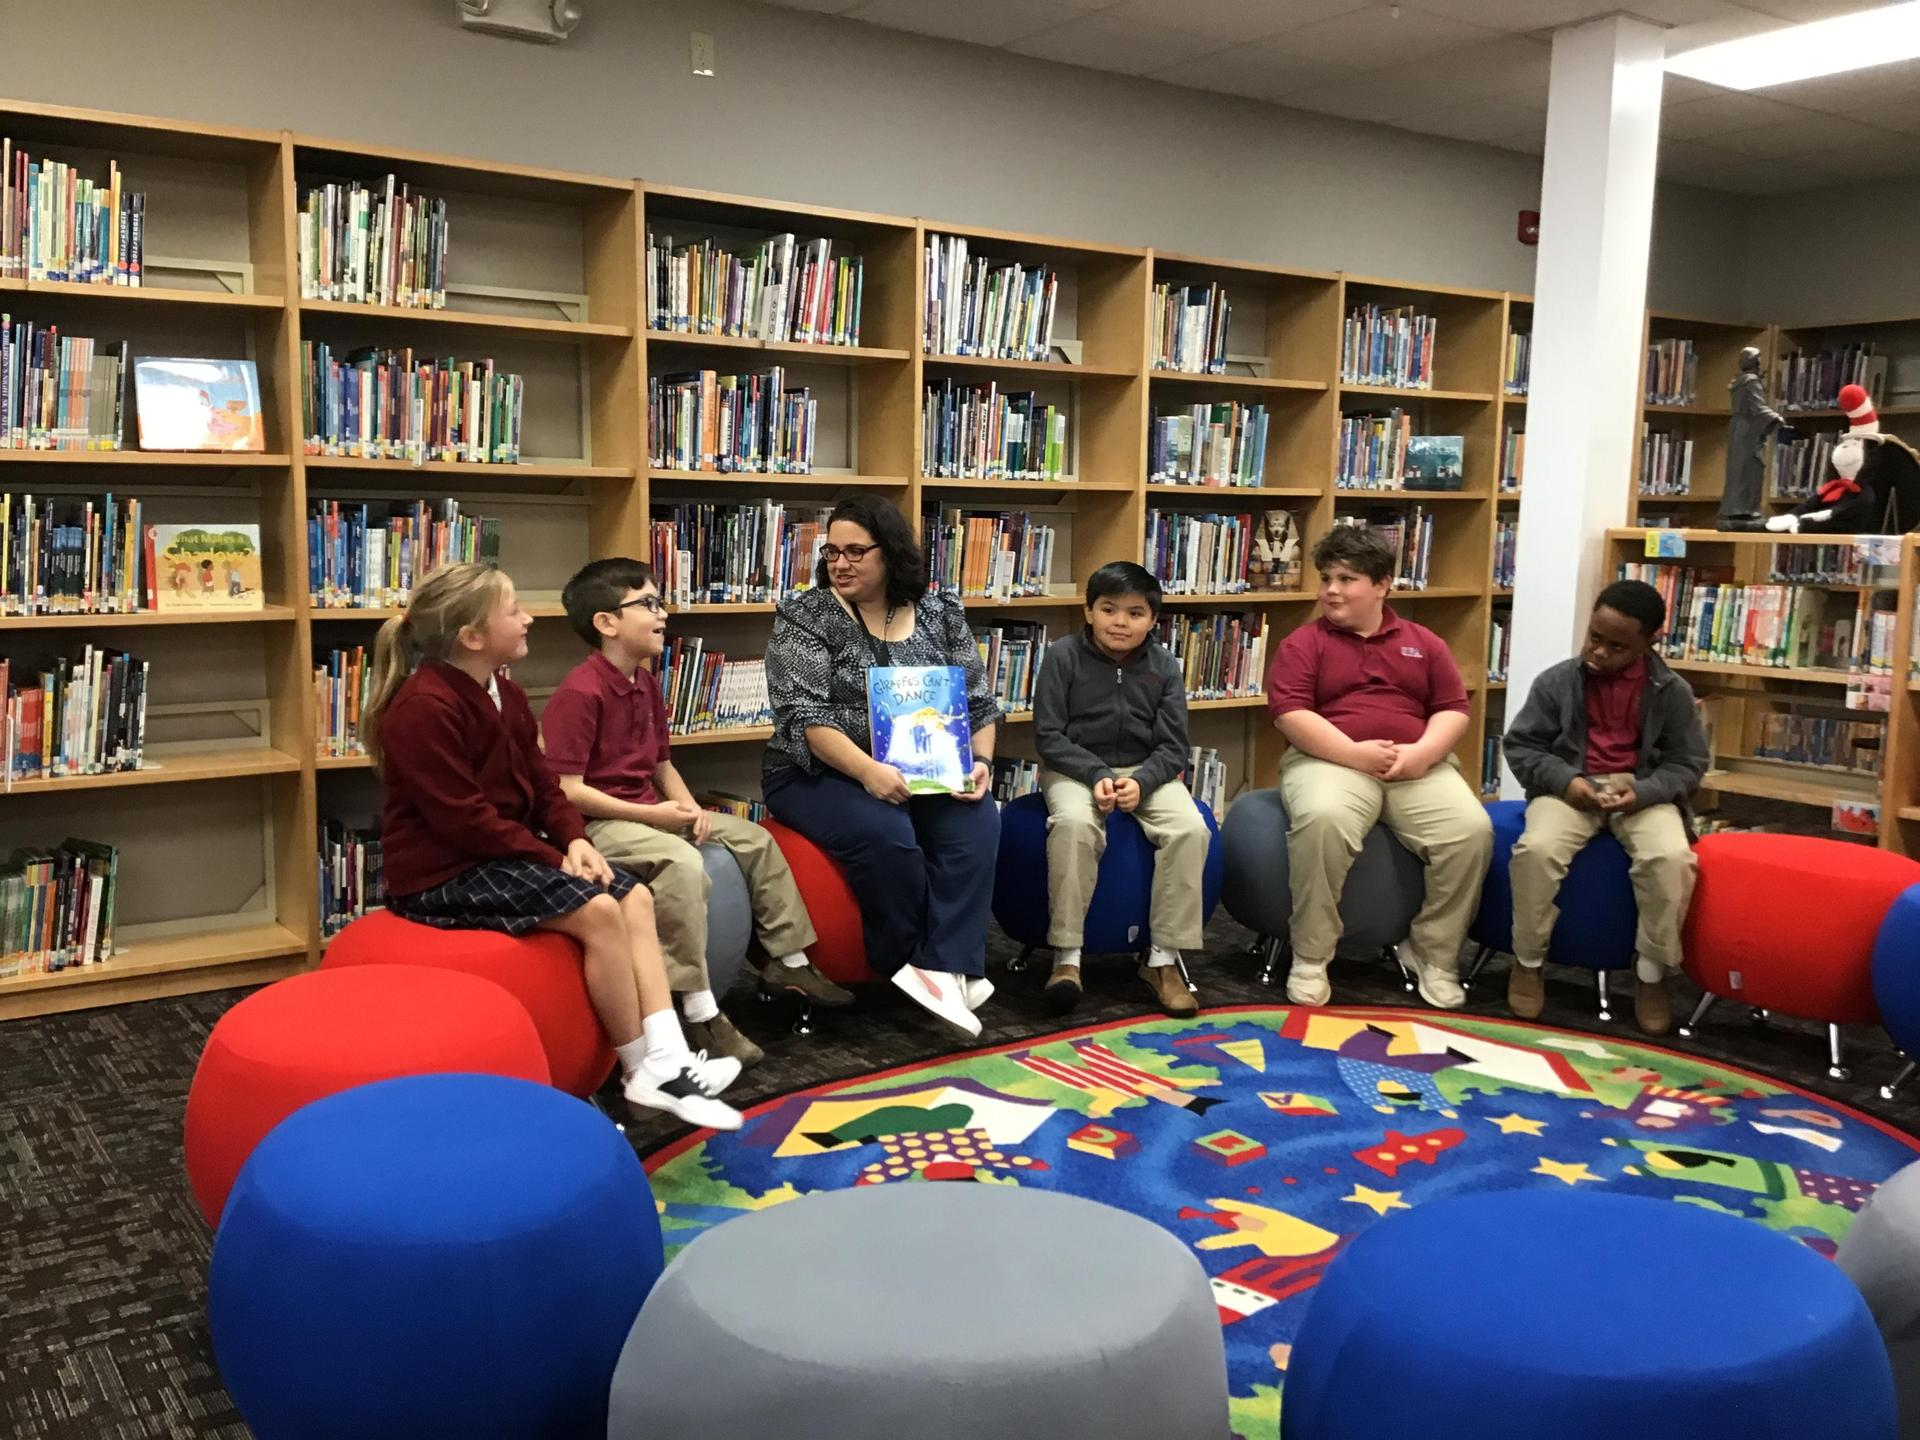 Reading in Library